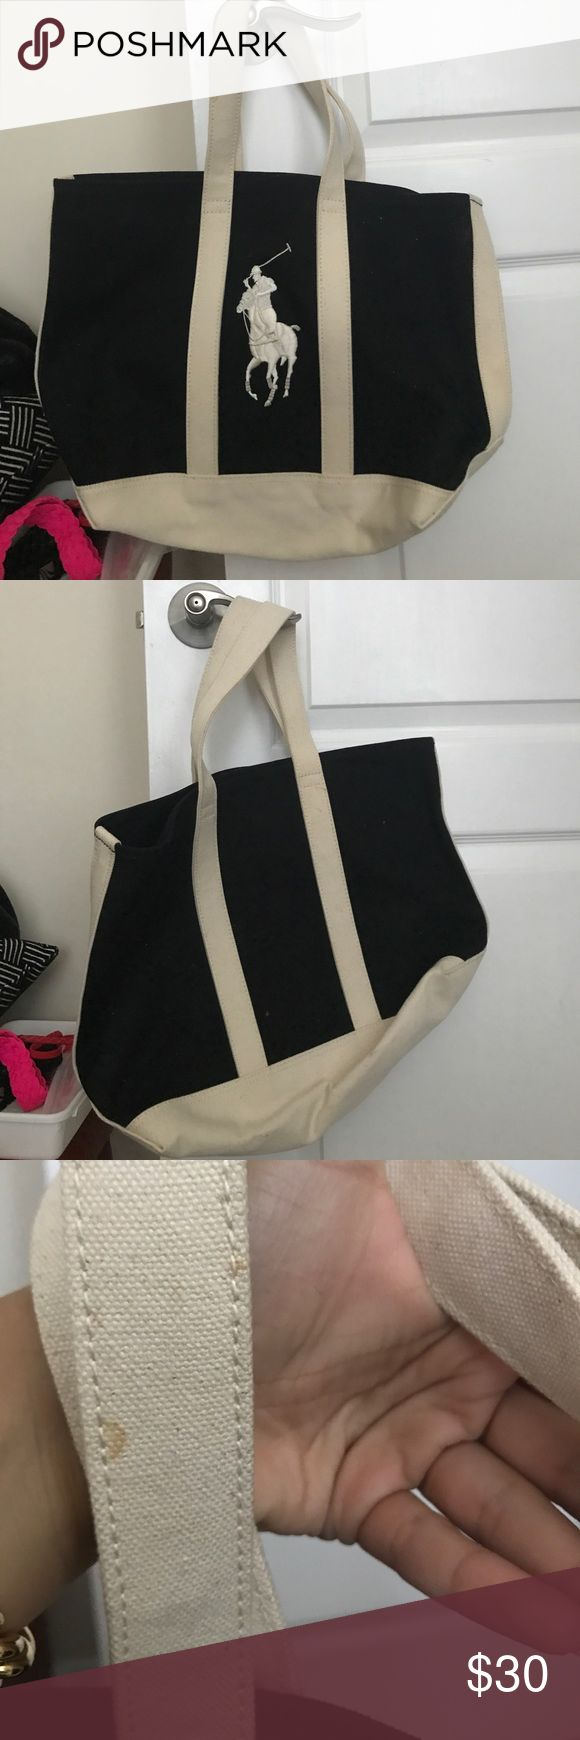 EUC POLO RALPH LAUREN CANVAS TOTE BAG!!! NEVER WORN POLO RALPH LAUREN Canvas Tote Bag! Adorable for all year round wear! One small stain pictured...never used! Open to offers! Polo by Ralph Lauren Bags Totes